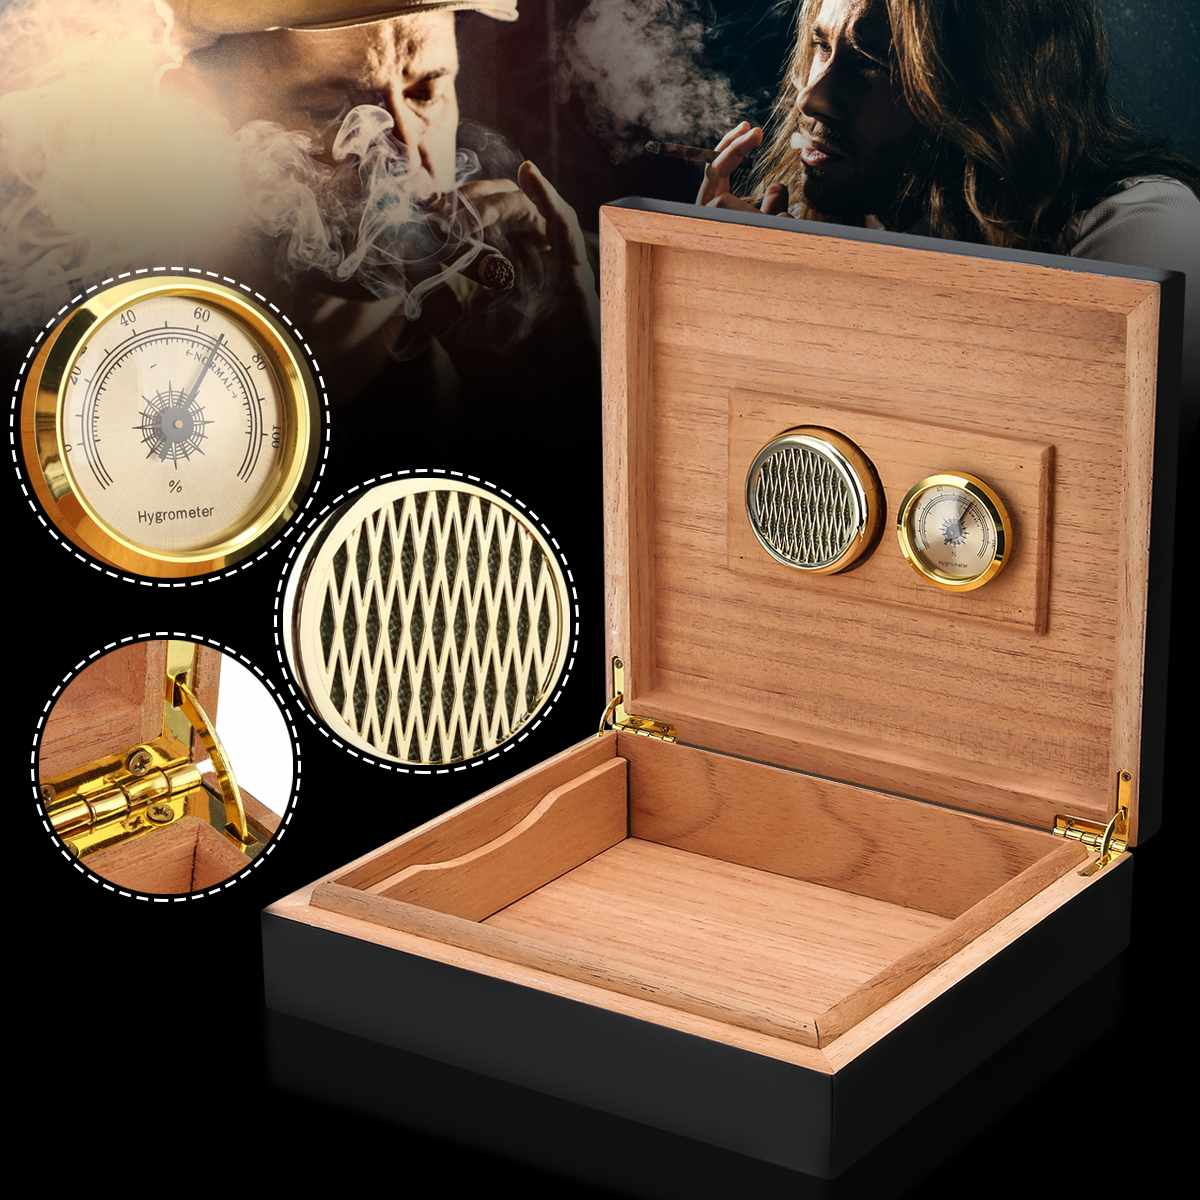 20-25 Counts Black Cedar Wood Lined Cigar Humidor Humidifier Travel Case Box With Hygrometer Cigar Holder Storage Box